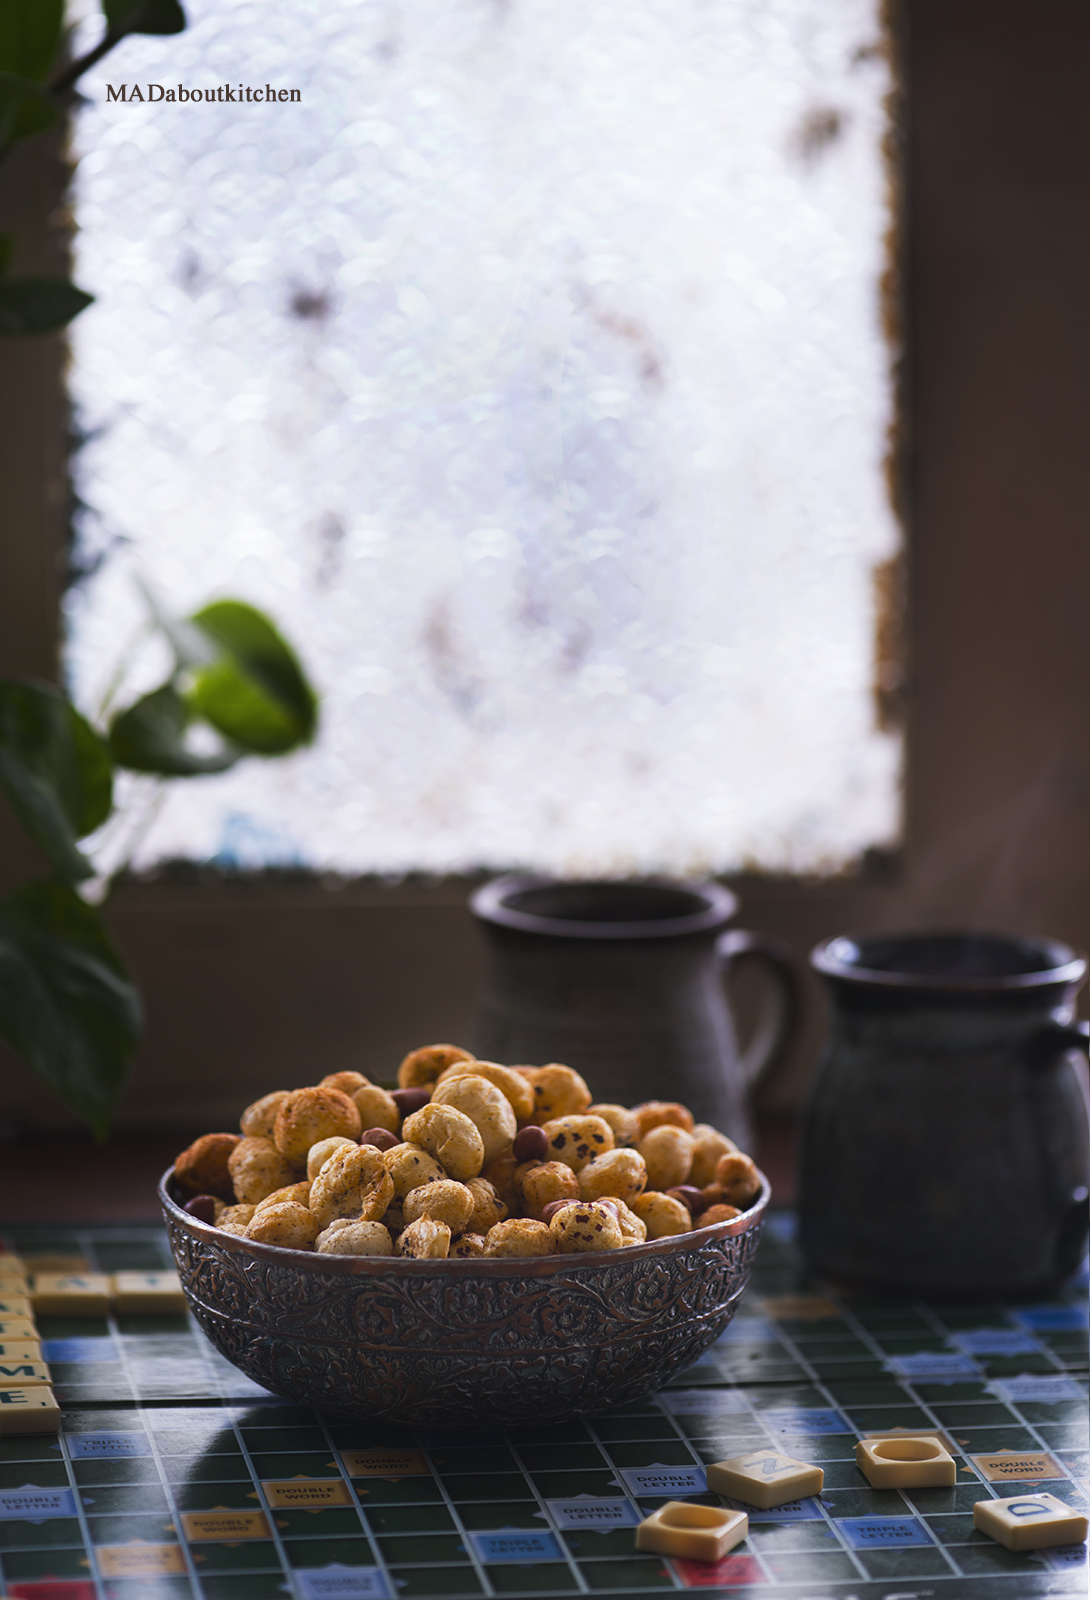 Makhana / Lotus Seeds snack is high in protein, carbohydrates, fibre, low in calories makes it a healthy and perfect teatime snack.